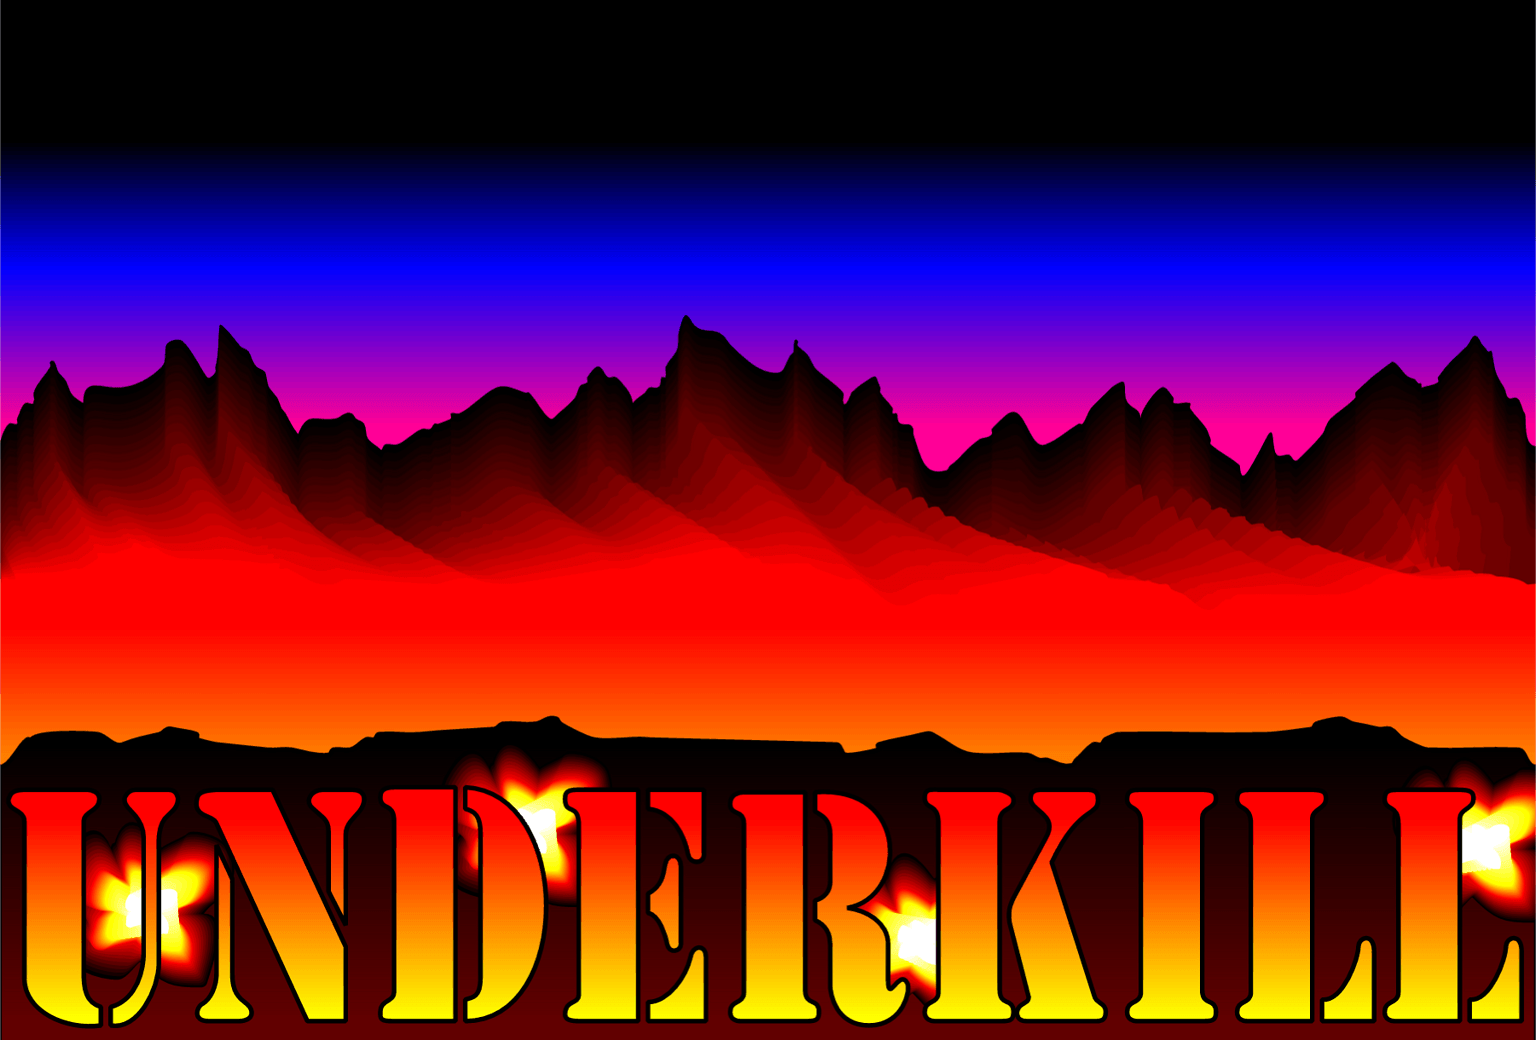 Underkill title graphic - a mountain range with firey lettering underneath